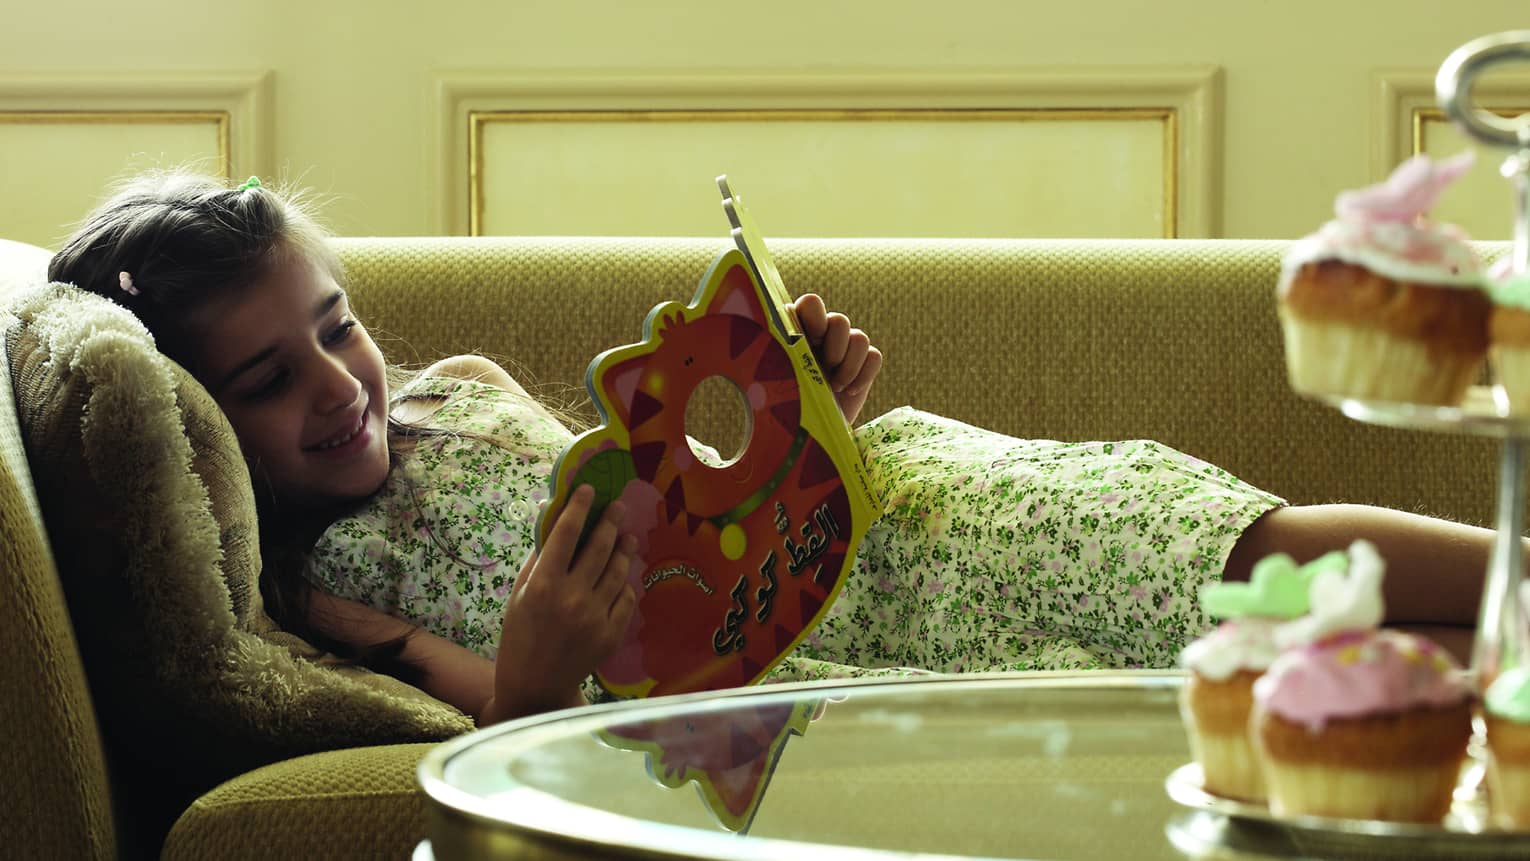 Smiling young girl lies on sunny sofa reading book